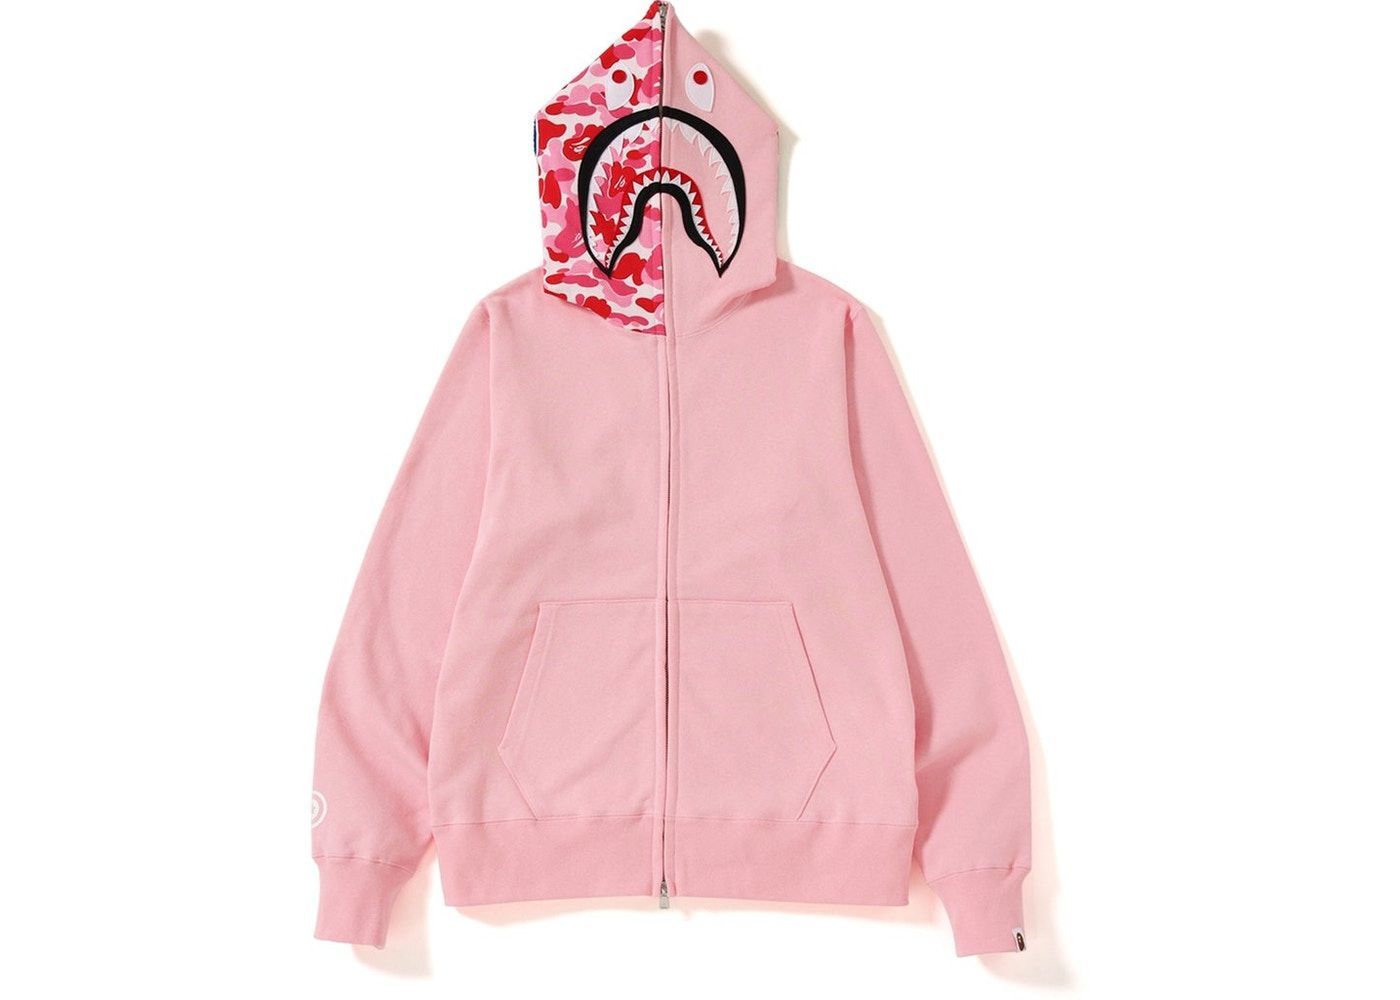 Buy And Sell Authentic Bape Streetwear On Stockx Including The Bape Abc Shark Full Zip Hoodie Ss19 Pink And Thousands Of Oth Bape Outfits Bape Hoodie Hoodies [ 1000 x 1400 Pixel ]